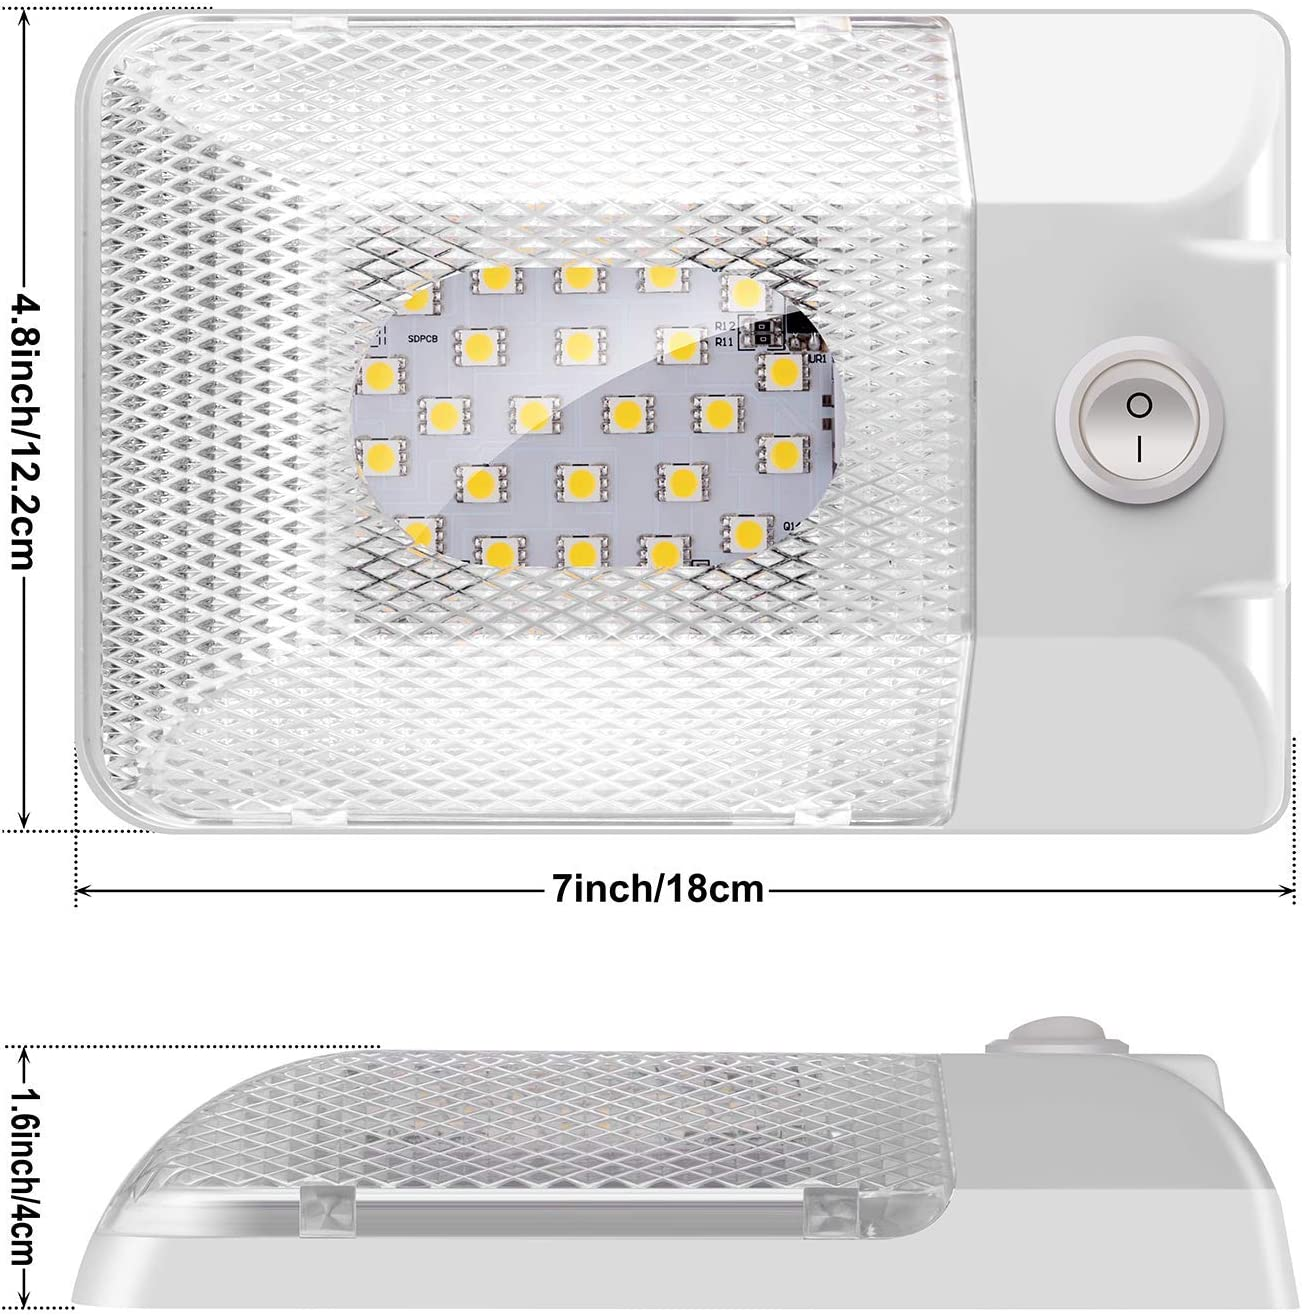 TurnRaise Led RV Ceiling Dome Light RV Interior Lighting with Switch,DC11-18V,300LM,24pcs 5050SMD LED Bulbs for RV//Car//Trailer Boat//Camper 2 Pack